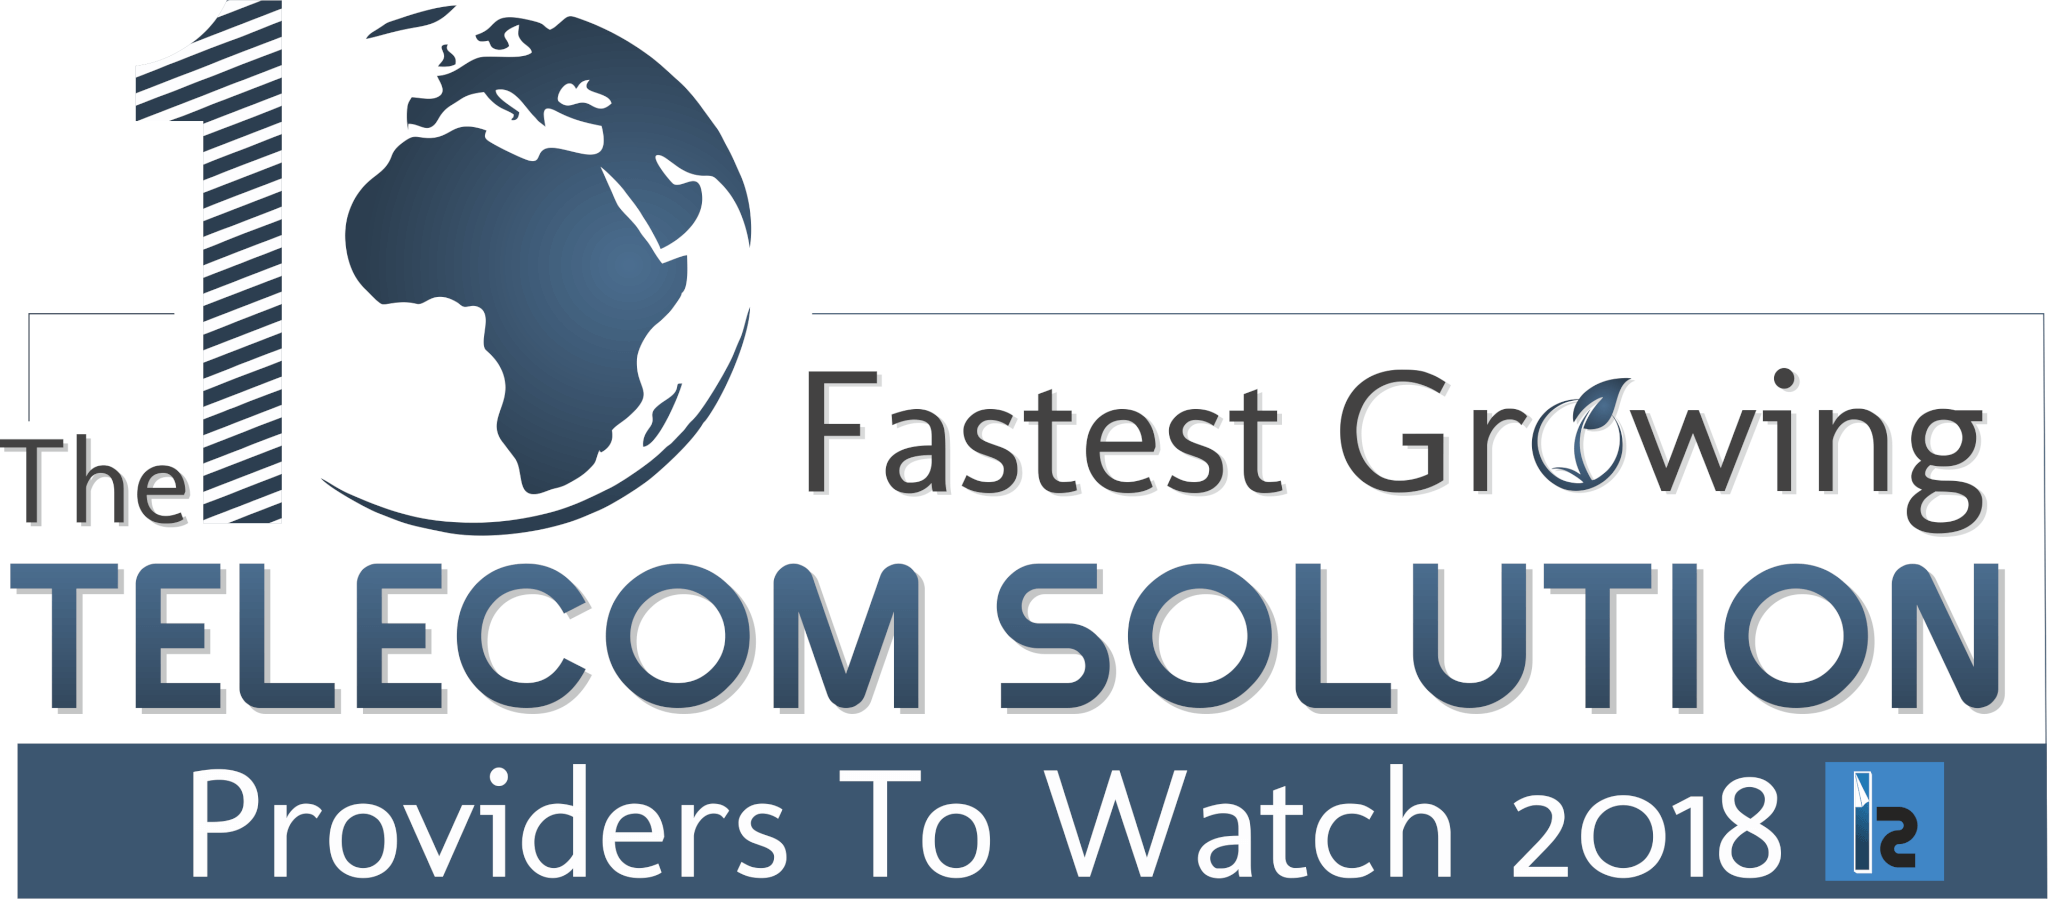 UFINET awarded as one of the 10 Fastest Growing Telecom Solution Providers to Watch 2018